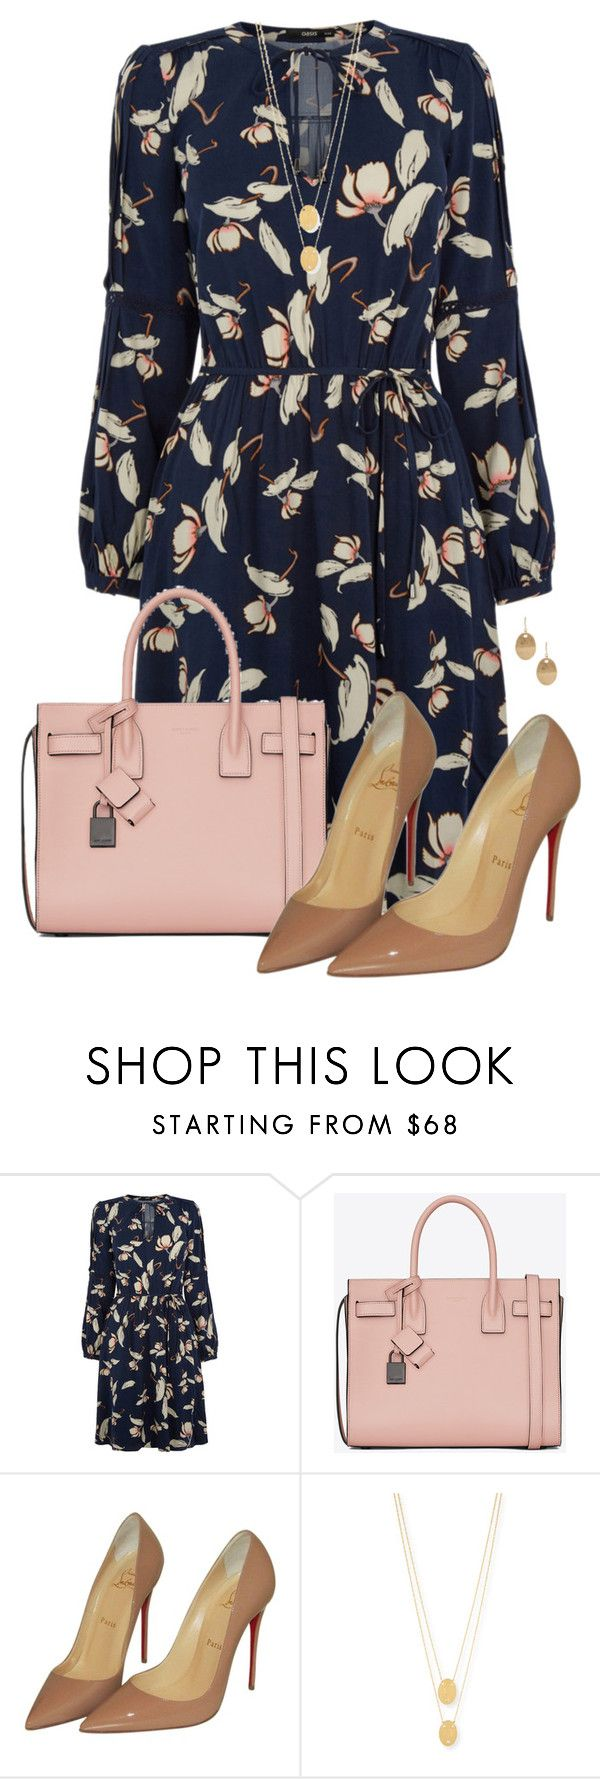 Simplicity by missdoolittle on Polyvore featuring Oasis, Christian Louboutin, Yves Saint Laurent, Jennifer Zeuner, Kenneth Cole, women's clothing, women's fashion, women, female and woman